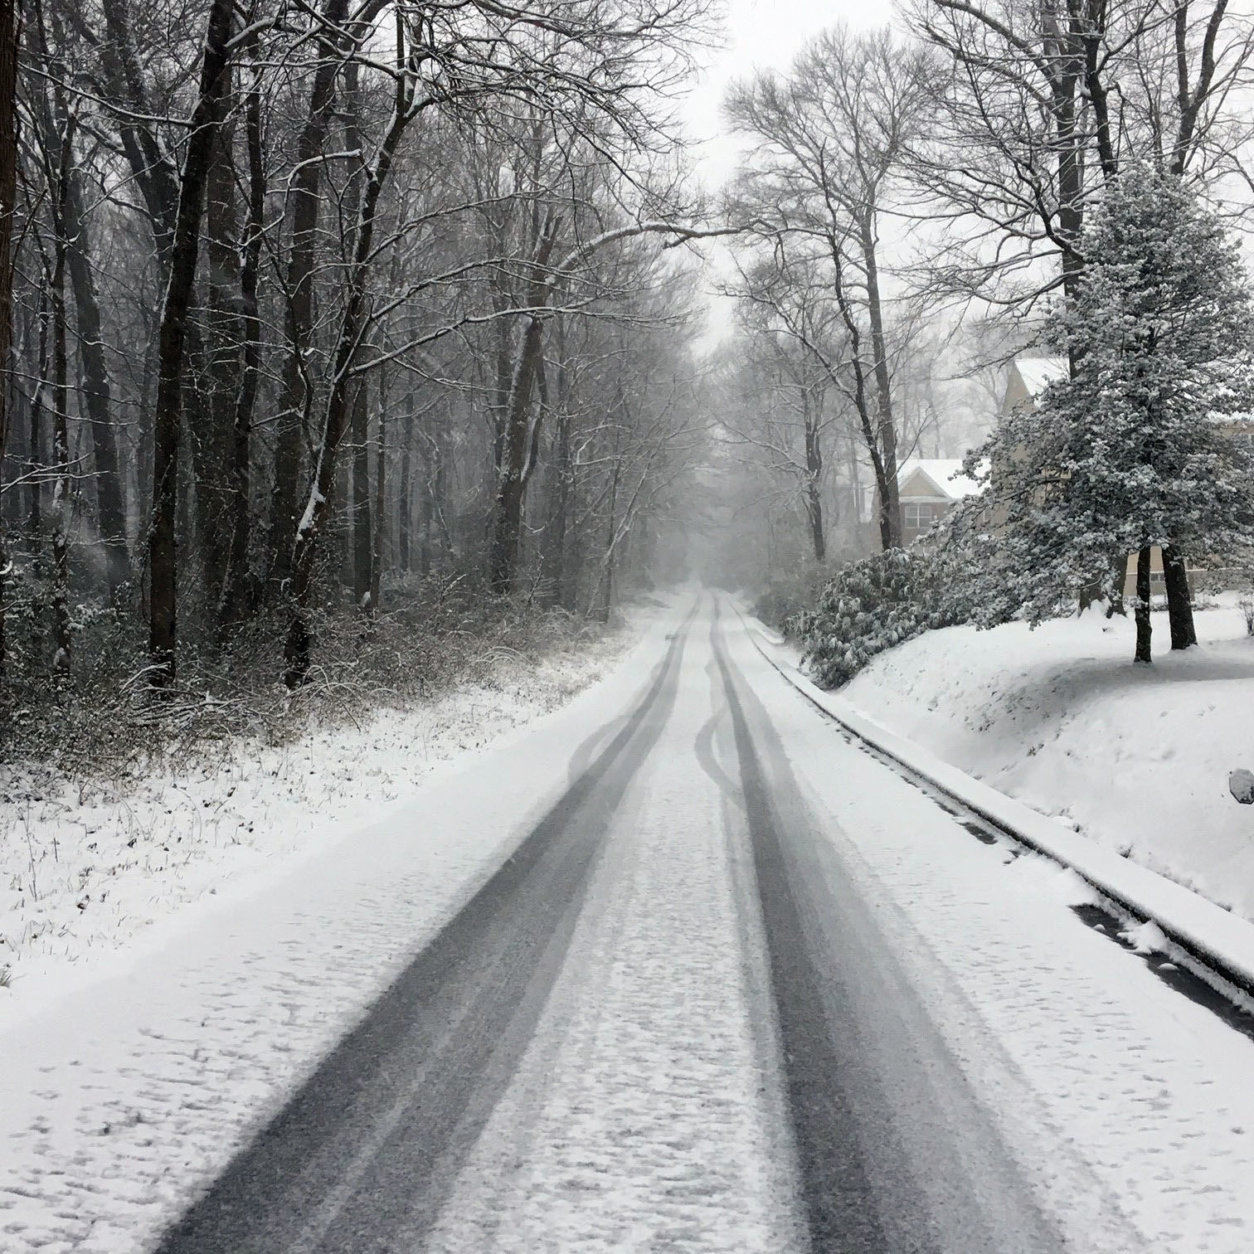 It's eerily quiet on Caverly Ave. in Beltsville, Maryland, on Wednesday morning during the snowstorm. (Courtesy David P. Jesser)